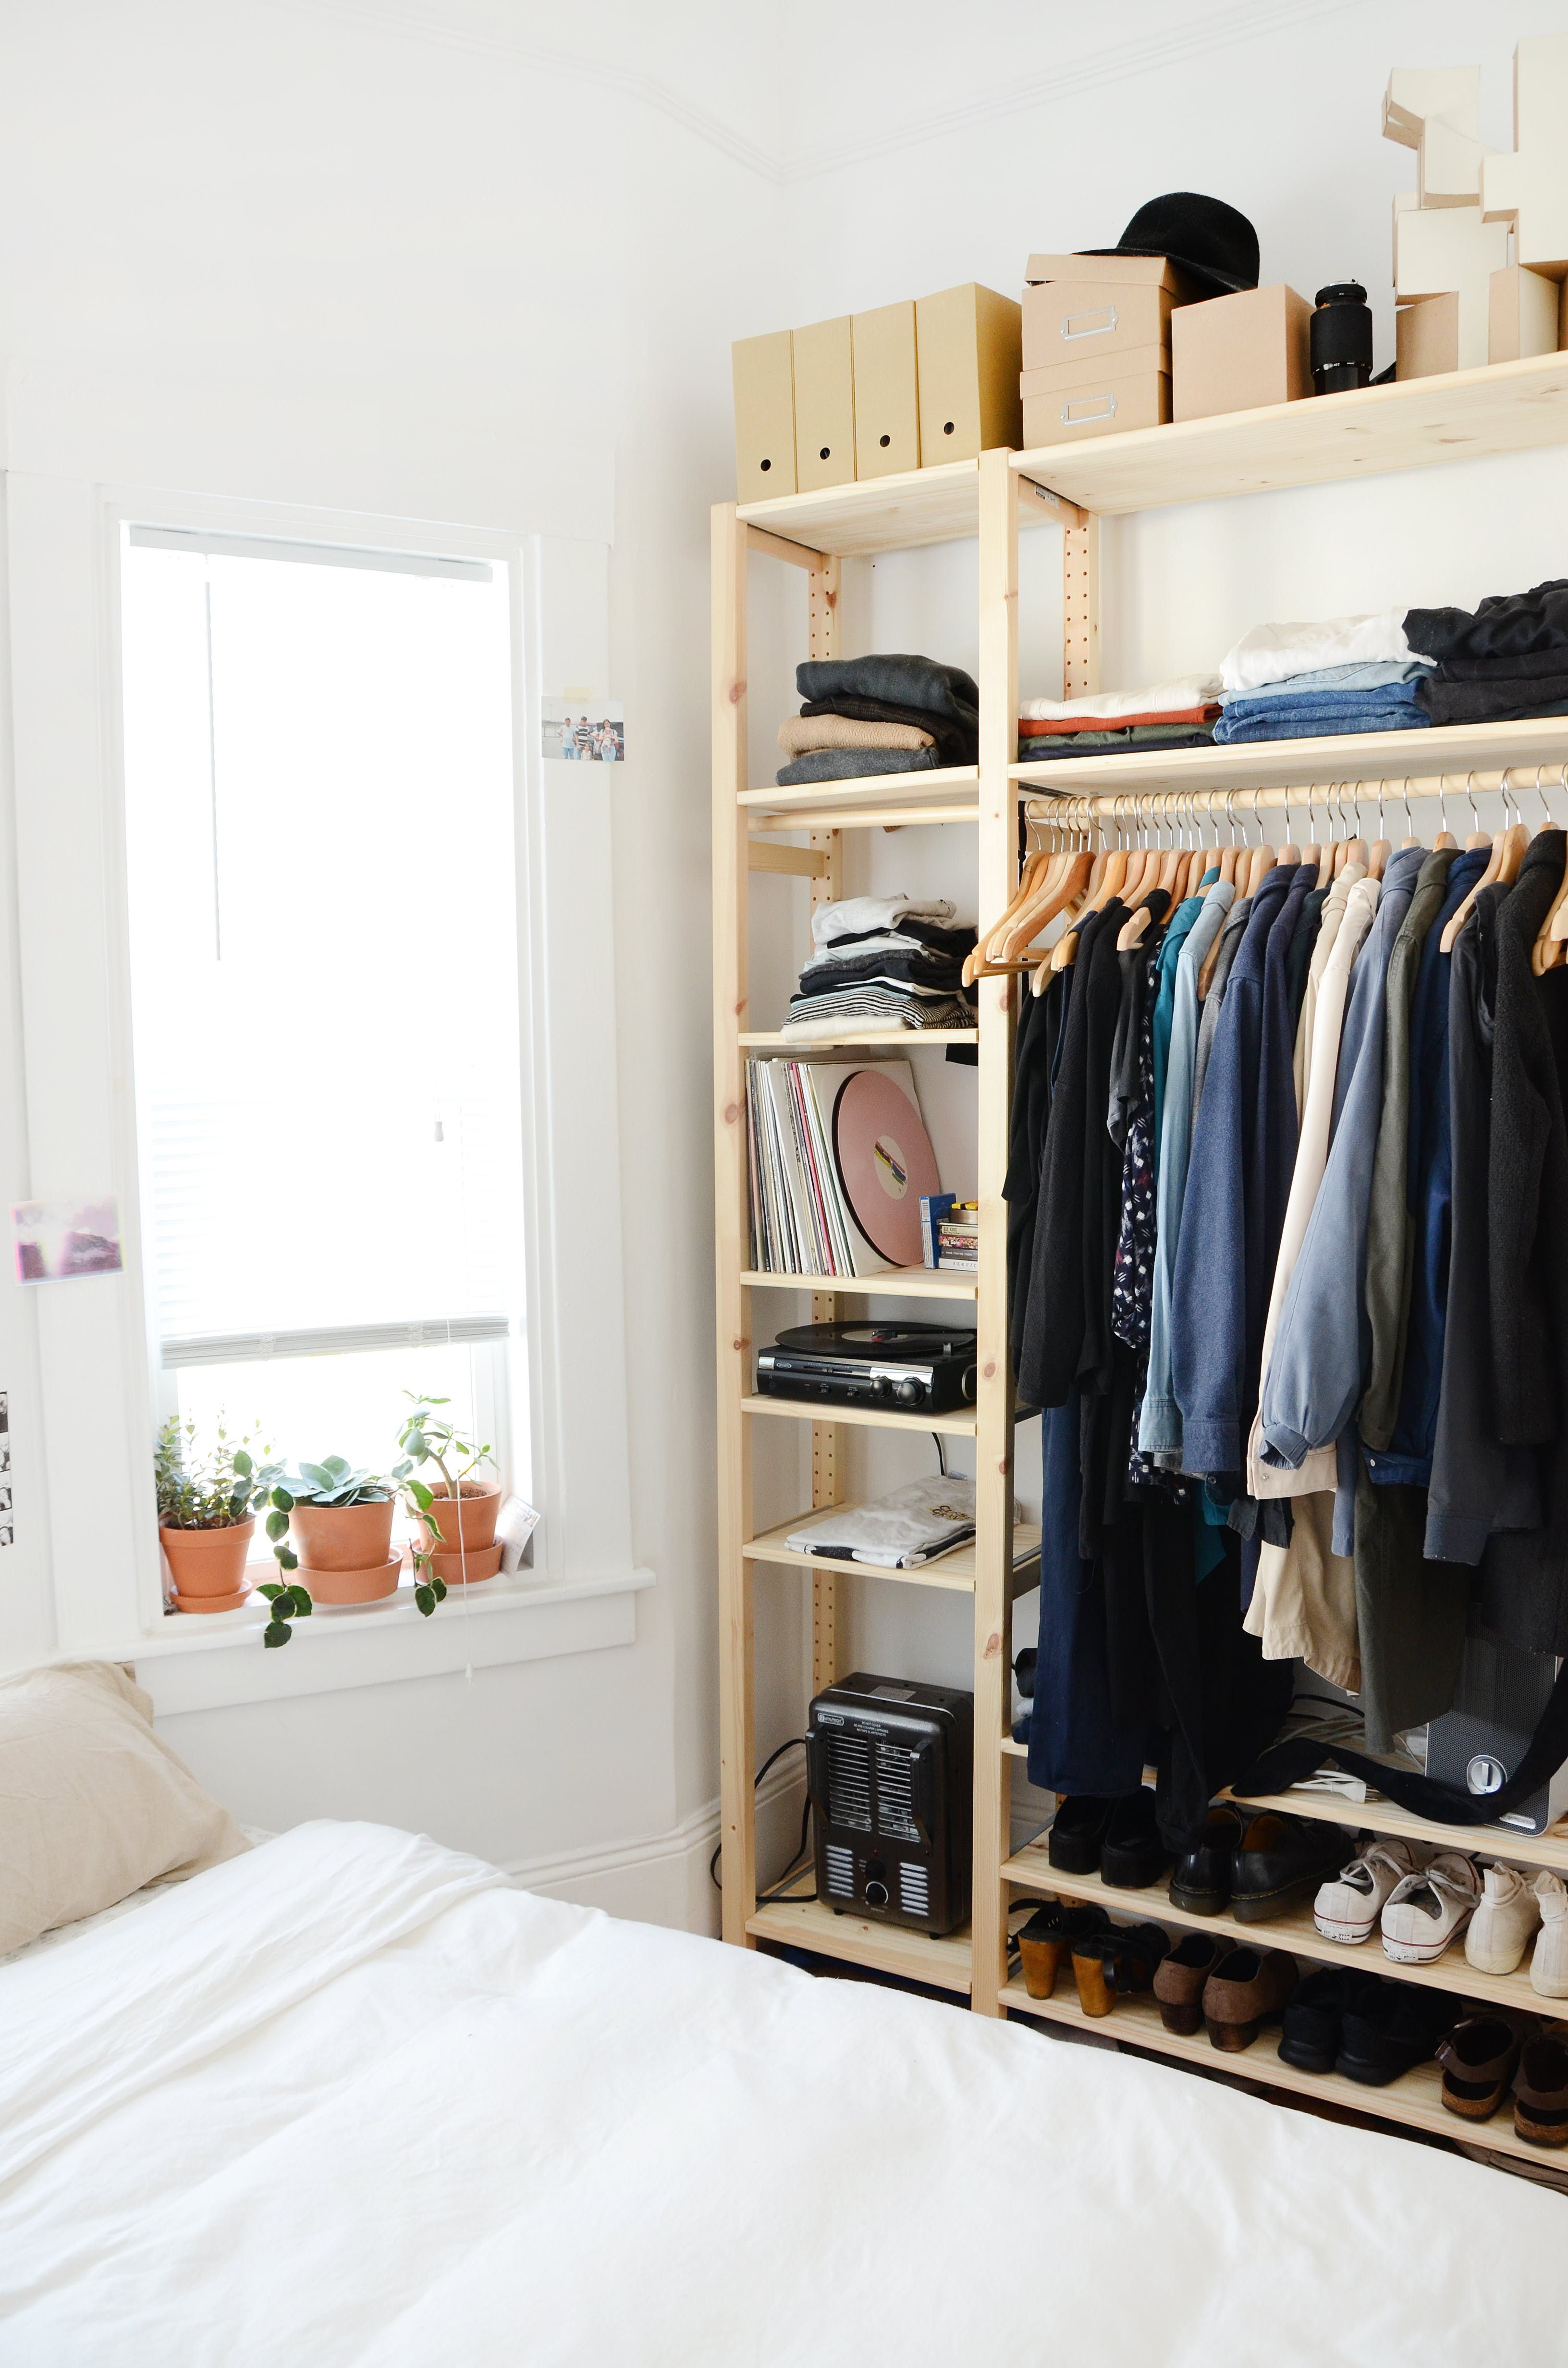 The Best Budget Ikea Buys When You Have Little Or No Closet Space